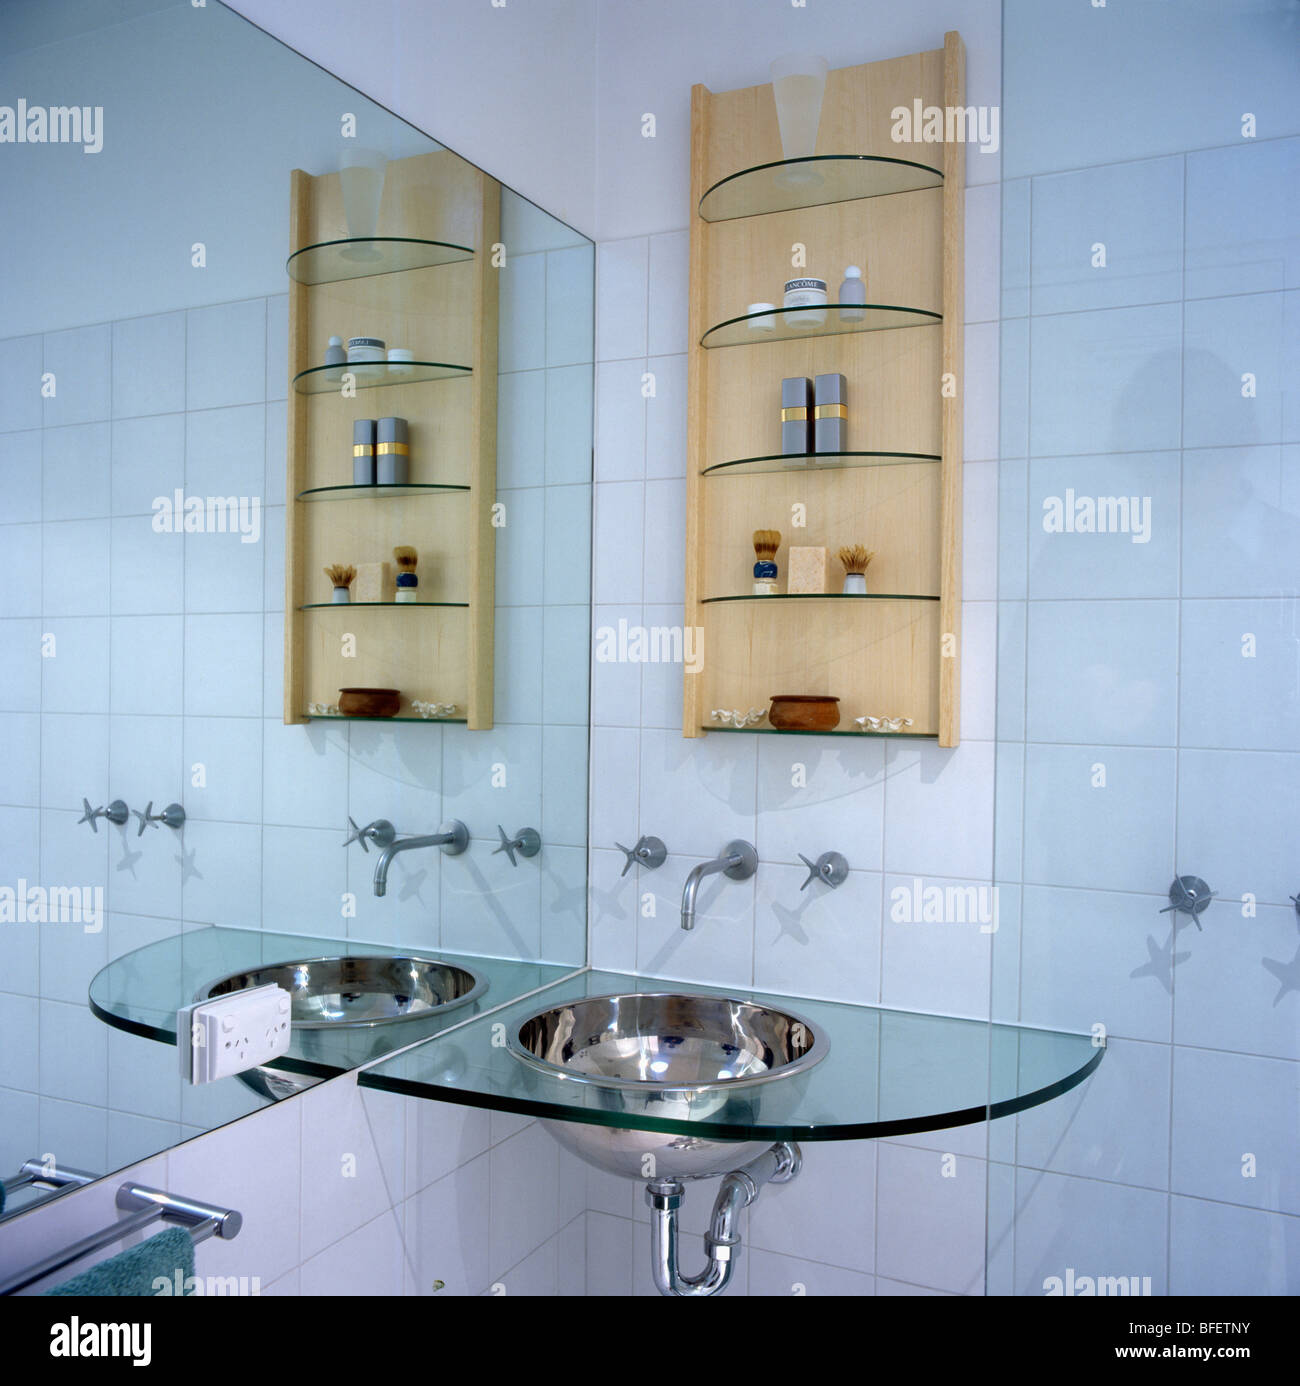 Nice In Wall Surround Image Collection - Bathtub Ideas - dilata.info